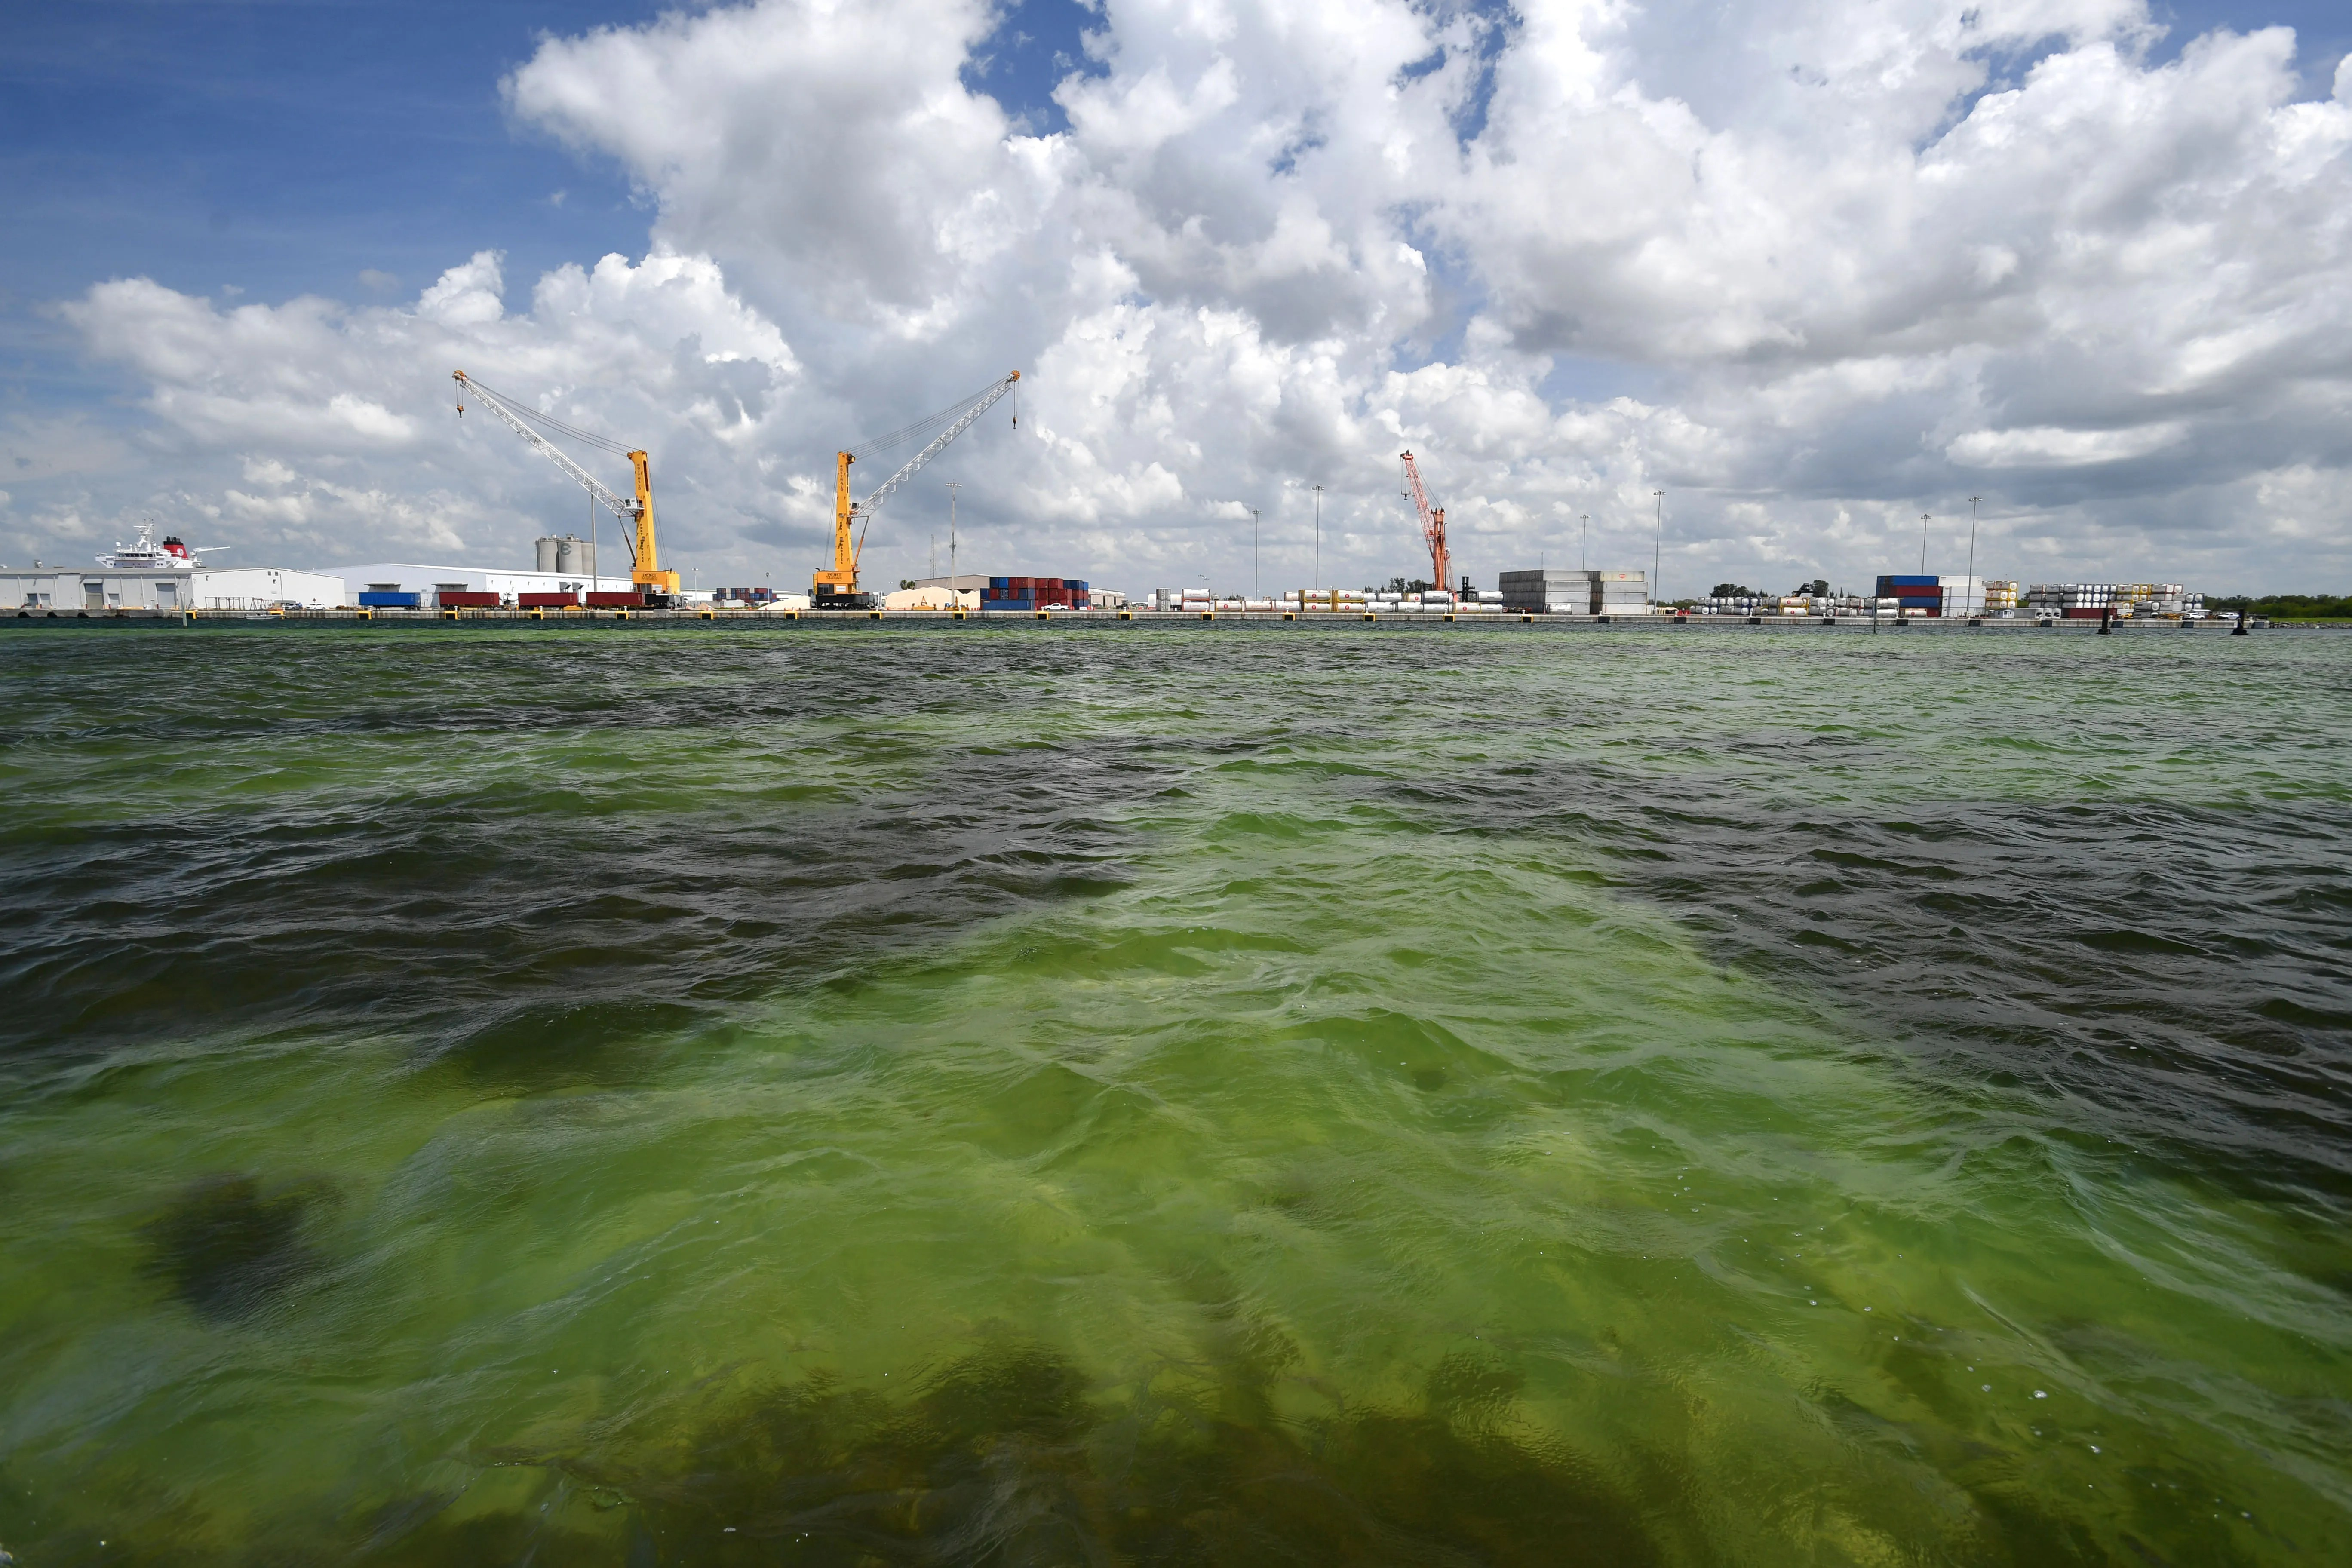 The water of Tampa Bay near Port Manatee in Florida. Millions of gallons of industrial wastewater are being pumped into Tampa Bay as the result of a leak at the Piney Point fertilizer plant processing plant.